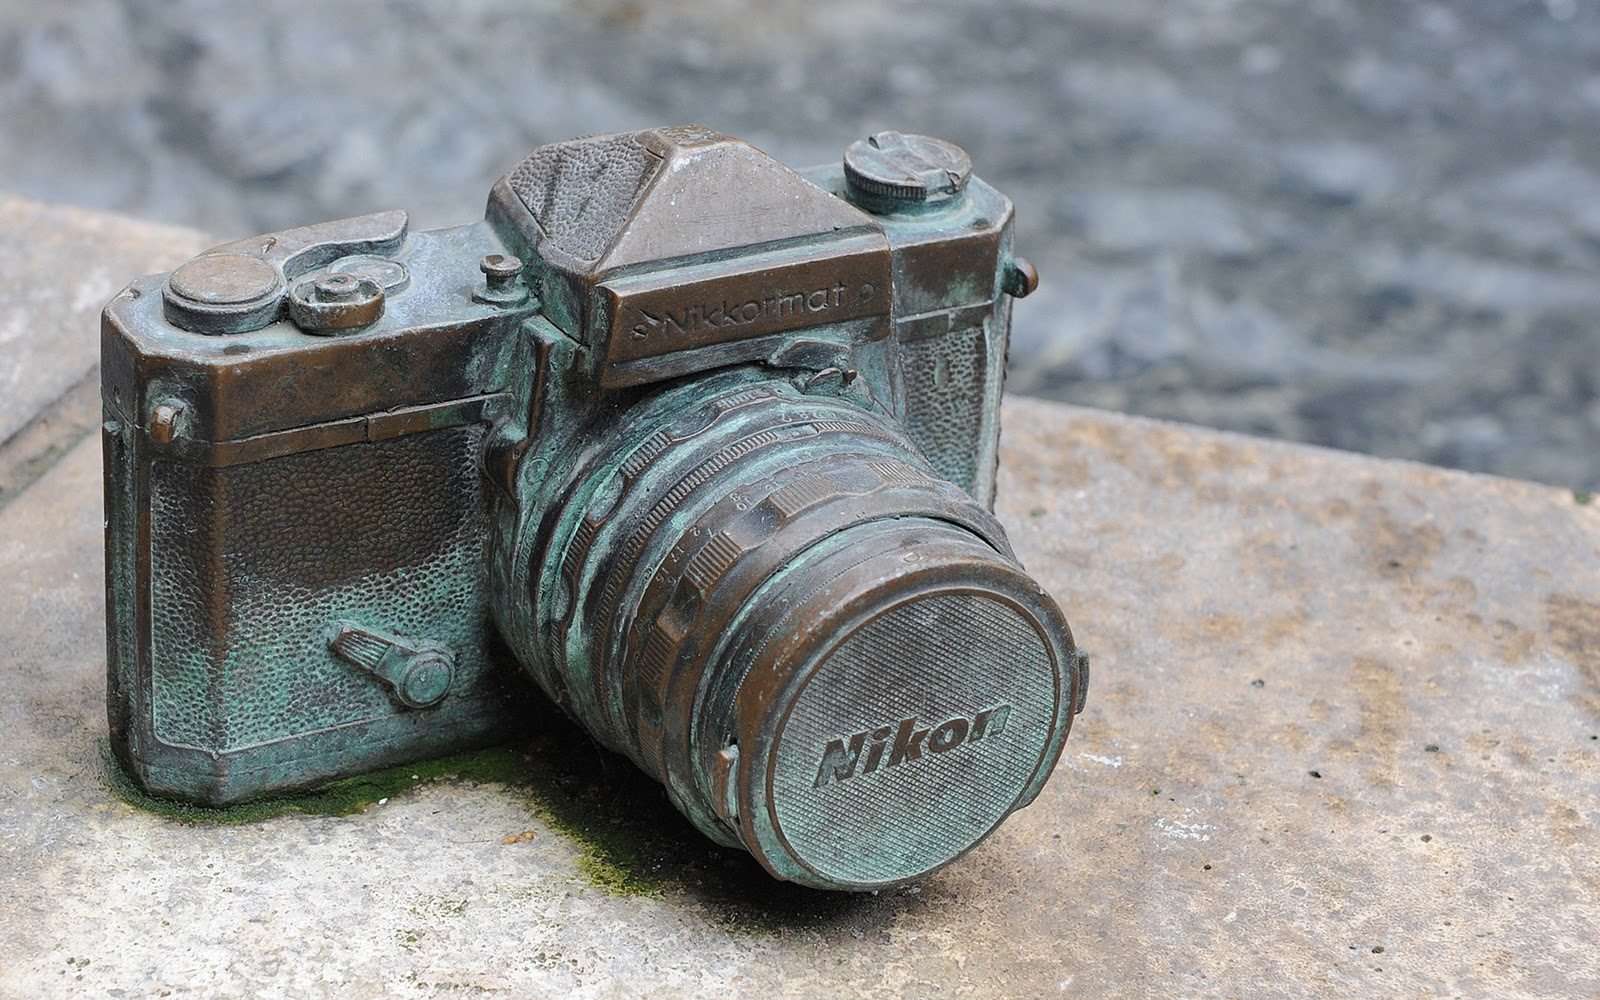 Rusted Nikon Camera HD Wallpaper | Windows 8 HD Wallpapers